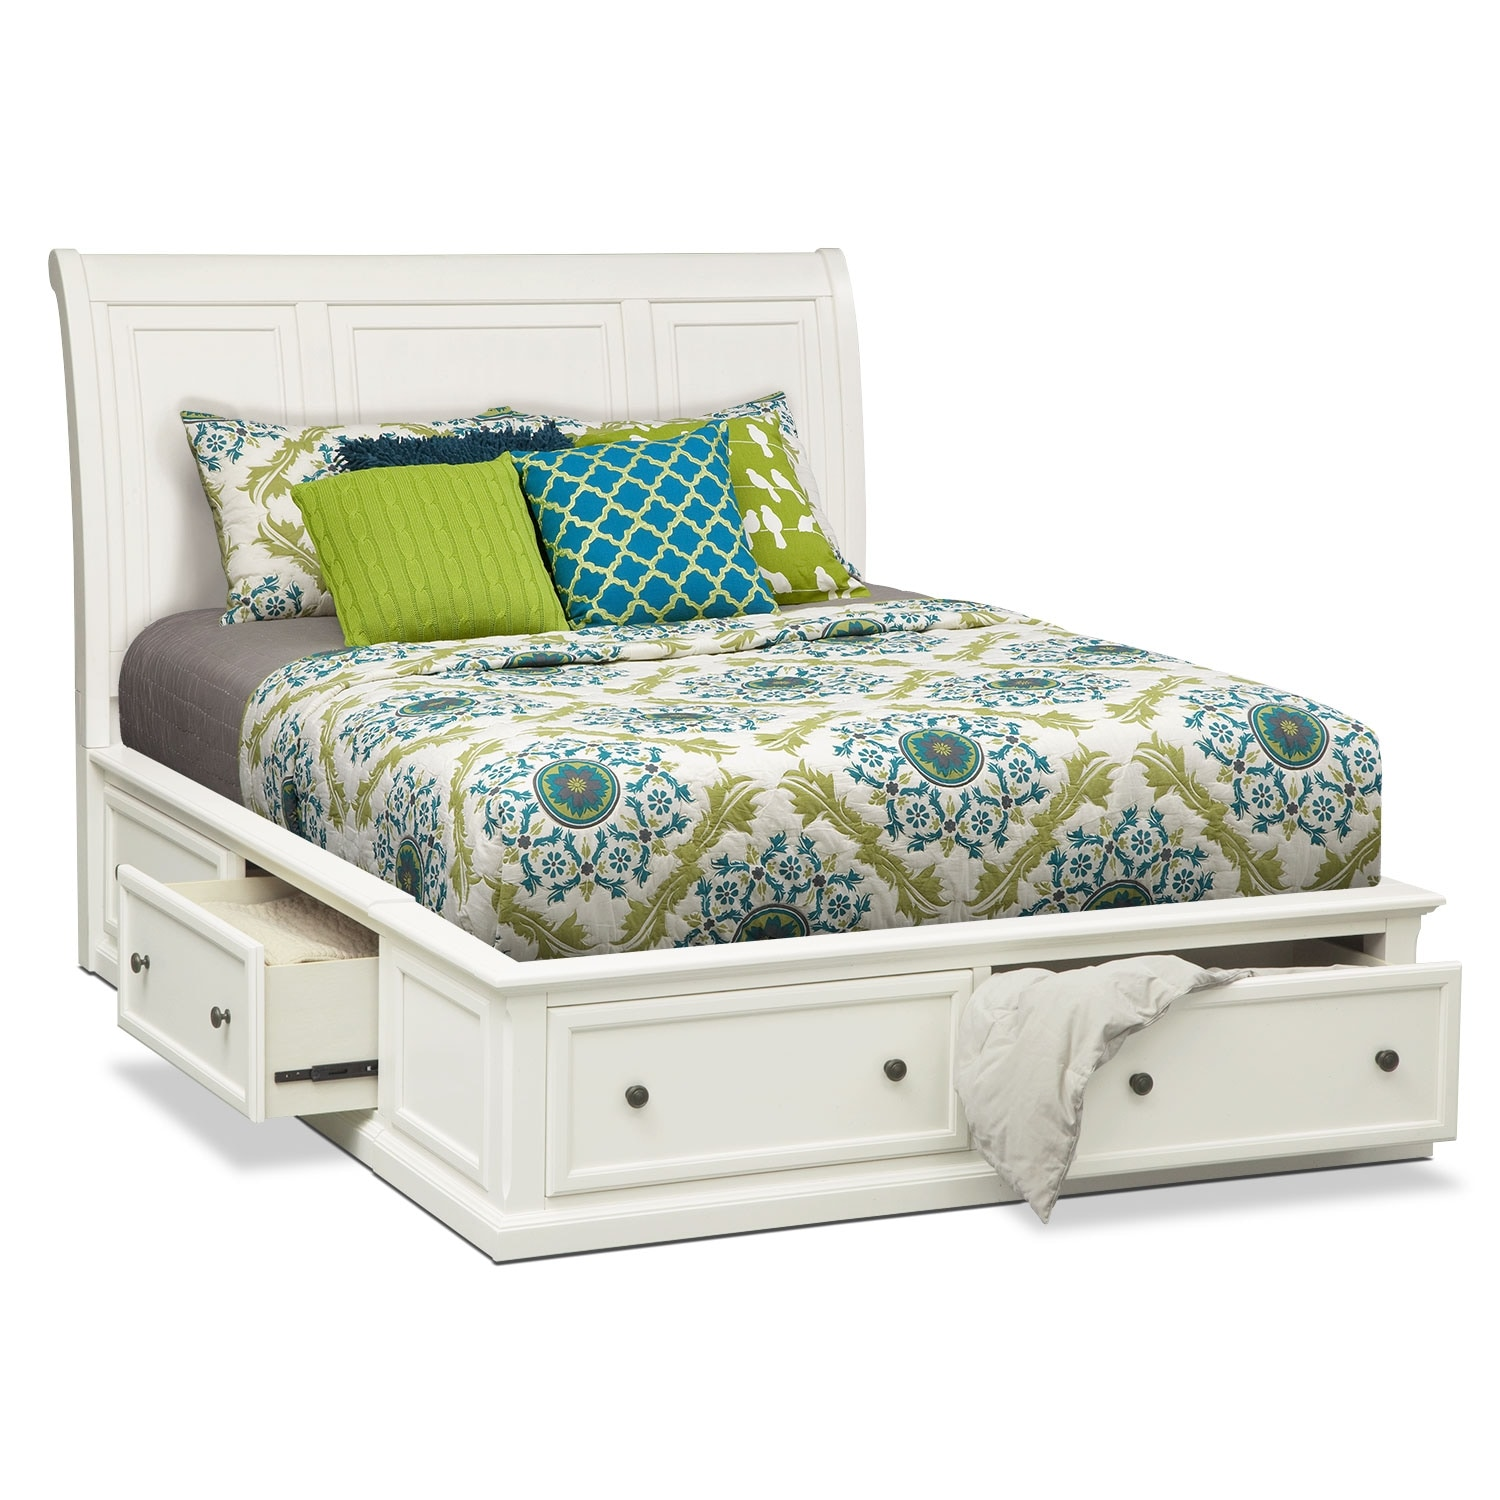 Hanover queen storage bed white american signature for White bedroom set with storage